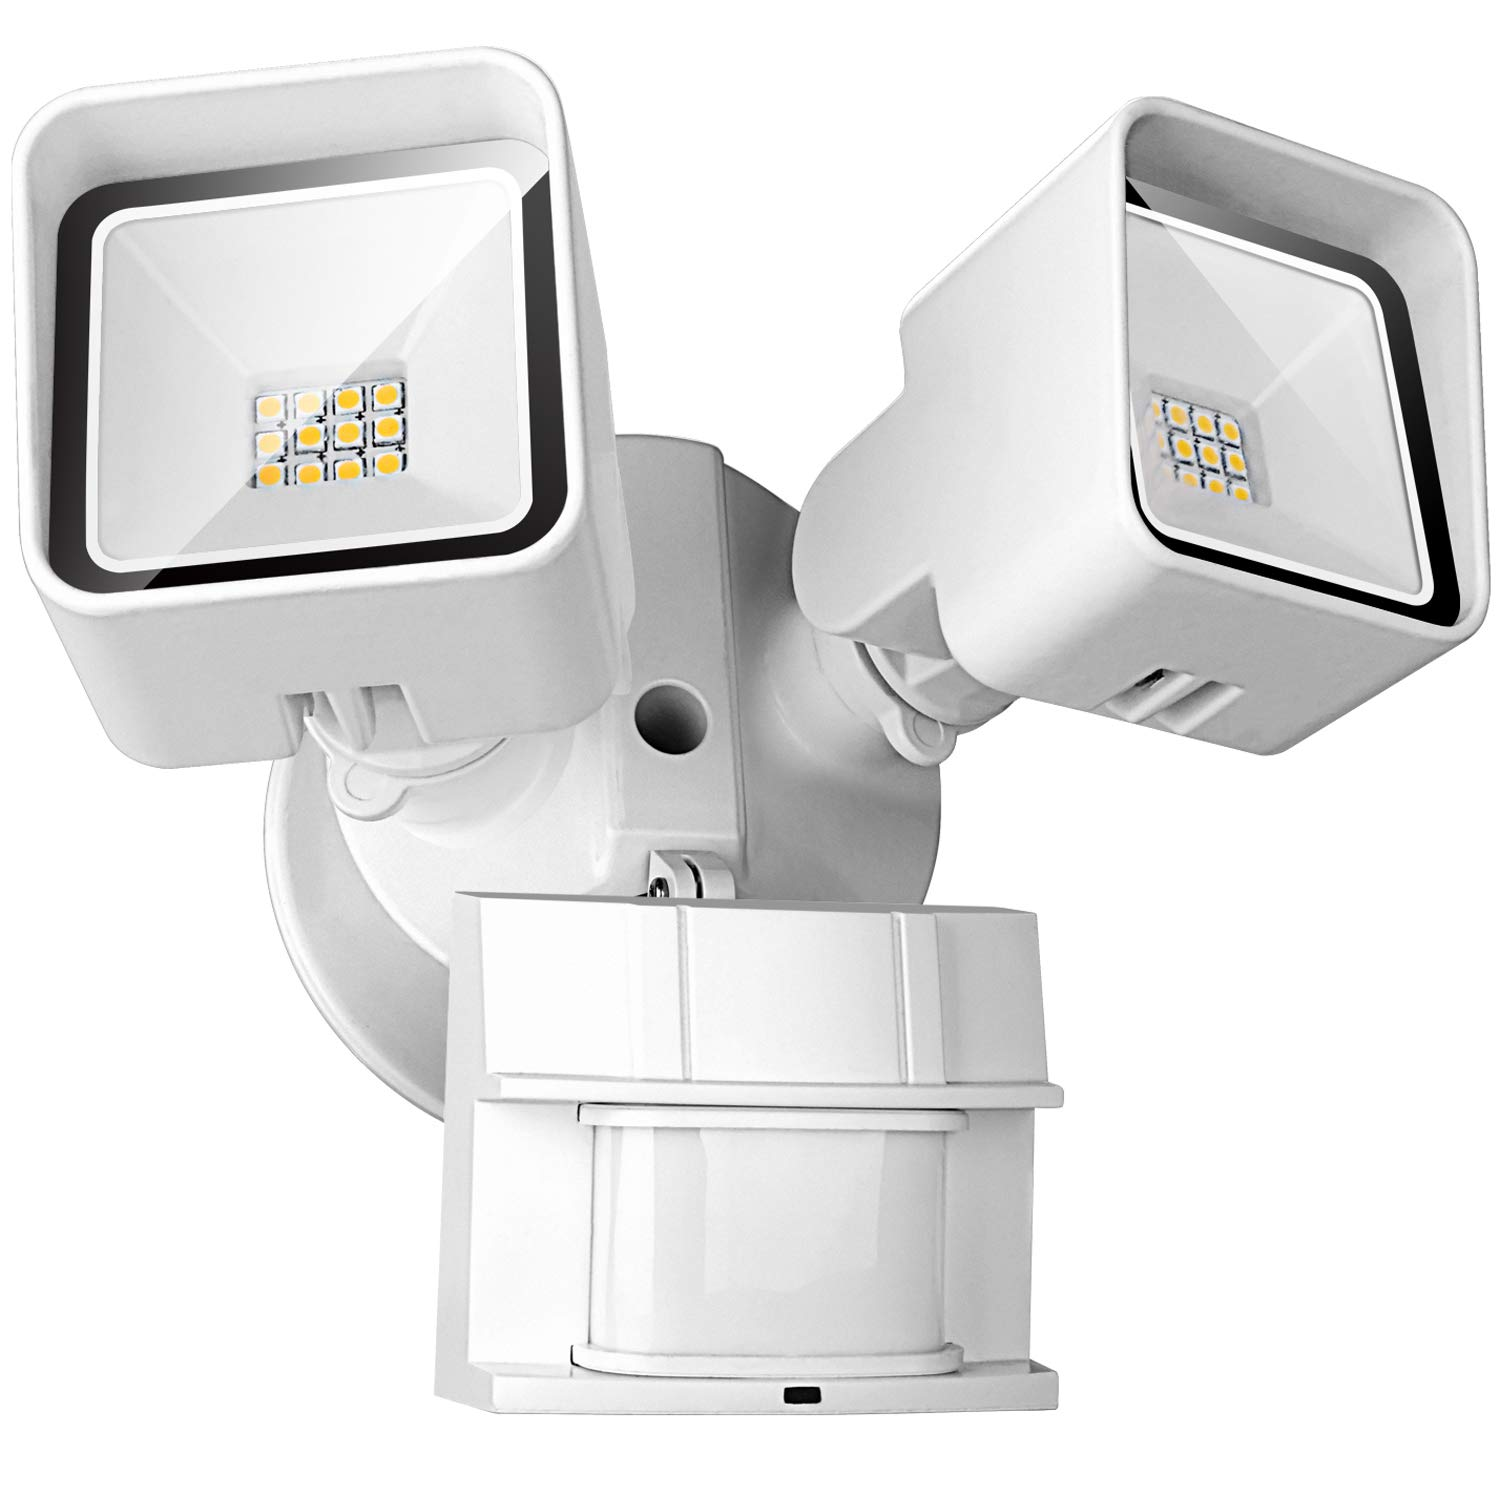 FrenchMay LED Motion Sensor Security Light, 20W 2000 Lumens, 5000K, 250W Equivalent IP65 Waterproof and Weatherproof, ETL/DLC Approved outdoor Flood Light, with Adjustable Sensor, White